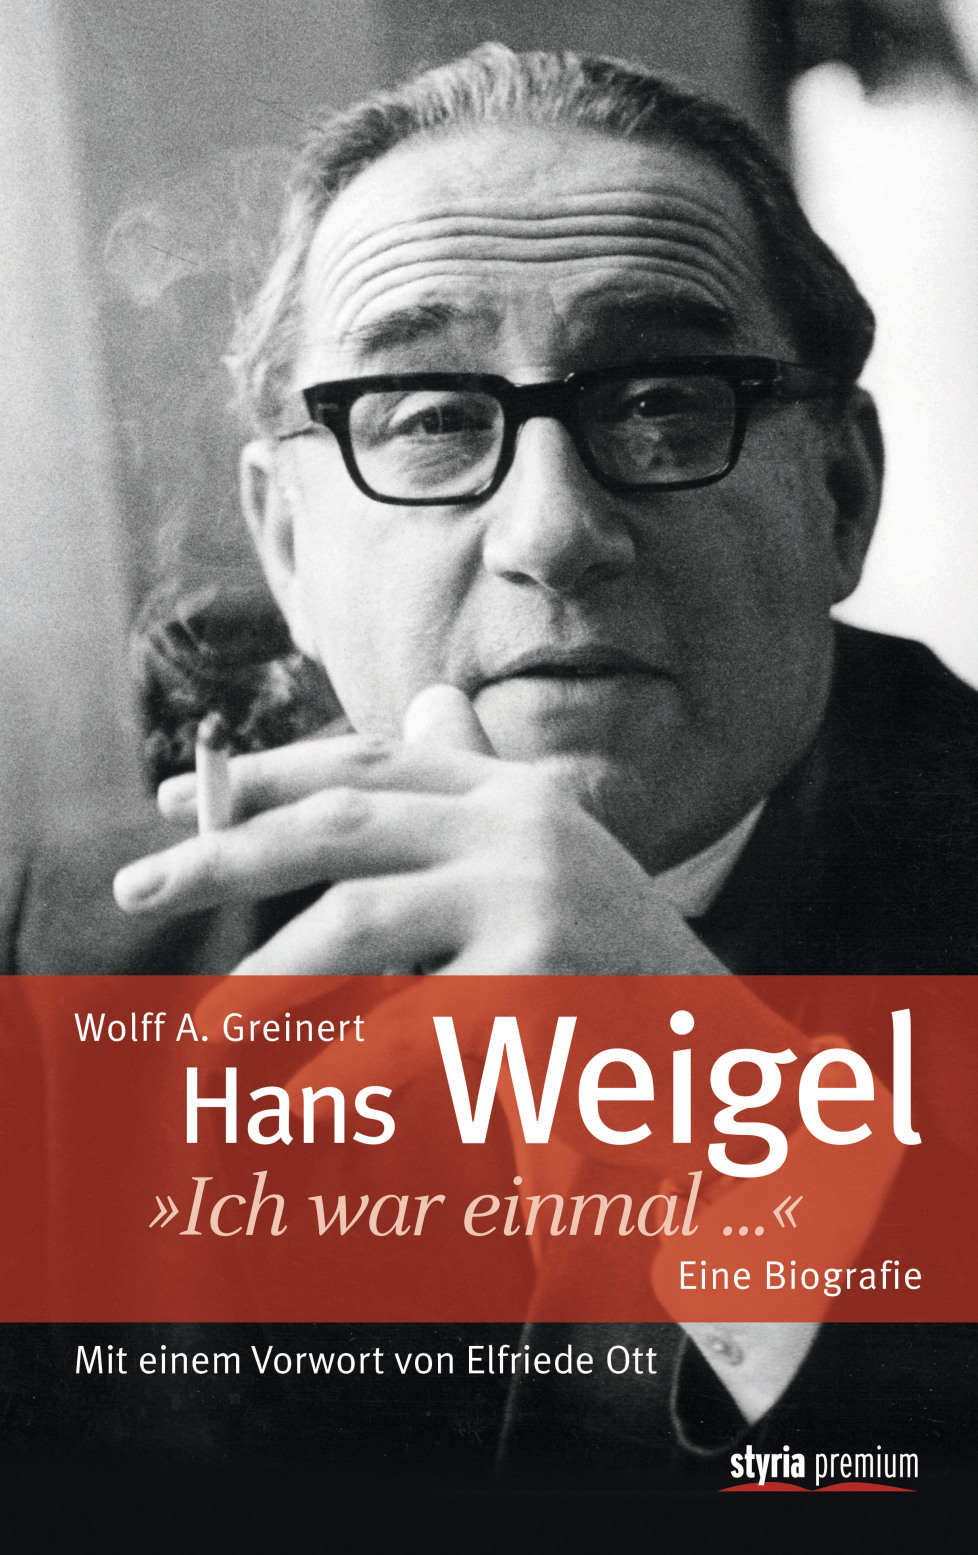 Hans Weigel